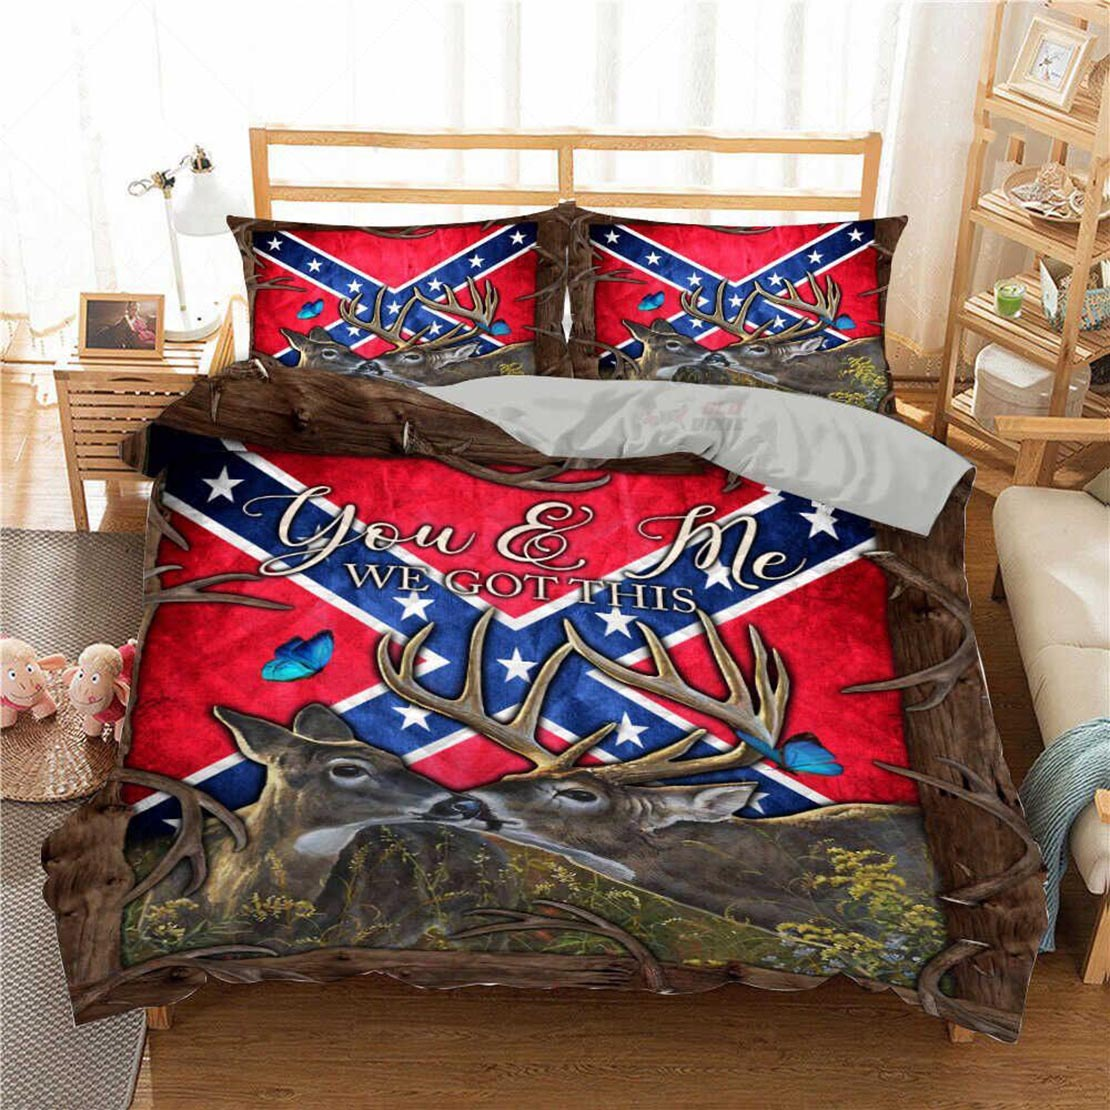 Confederate Flag Southern deer you and me we got this bed set - Picture 1